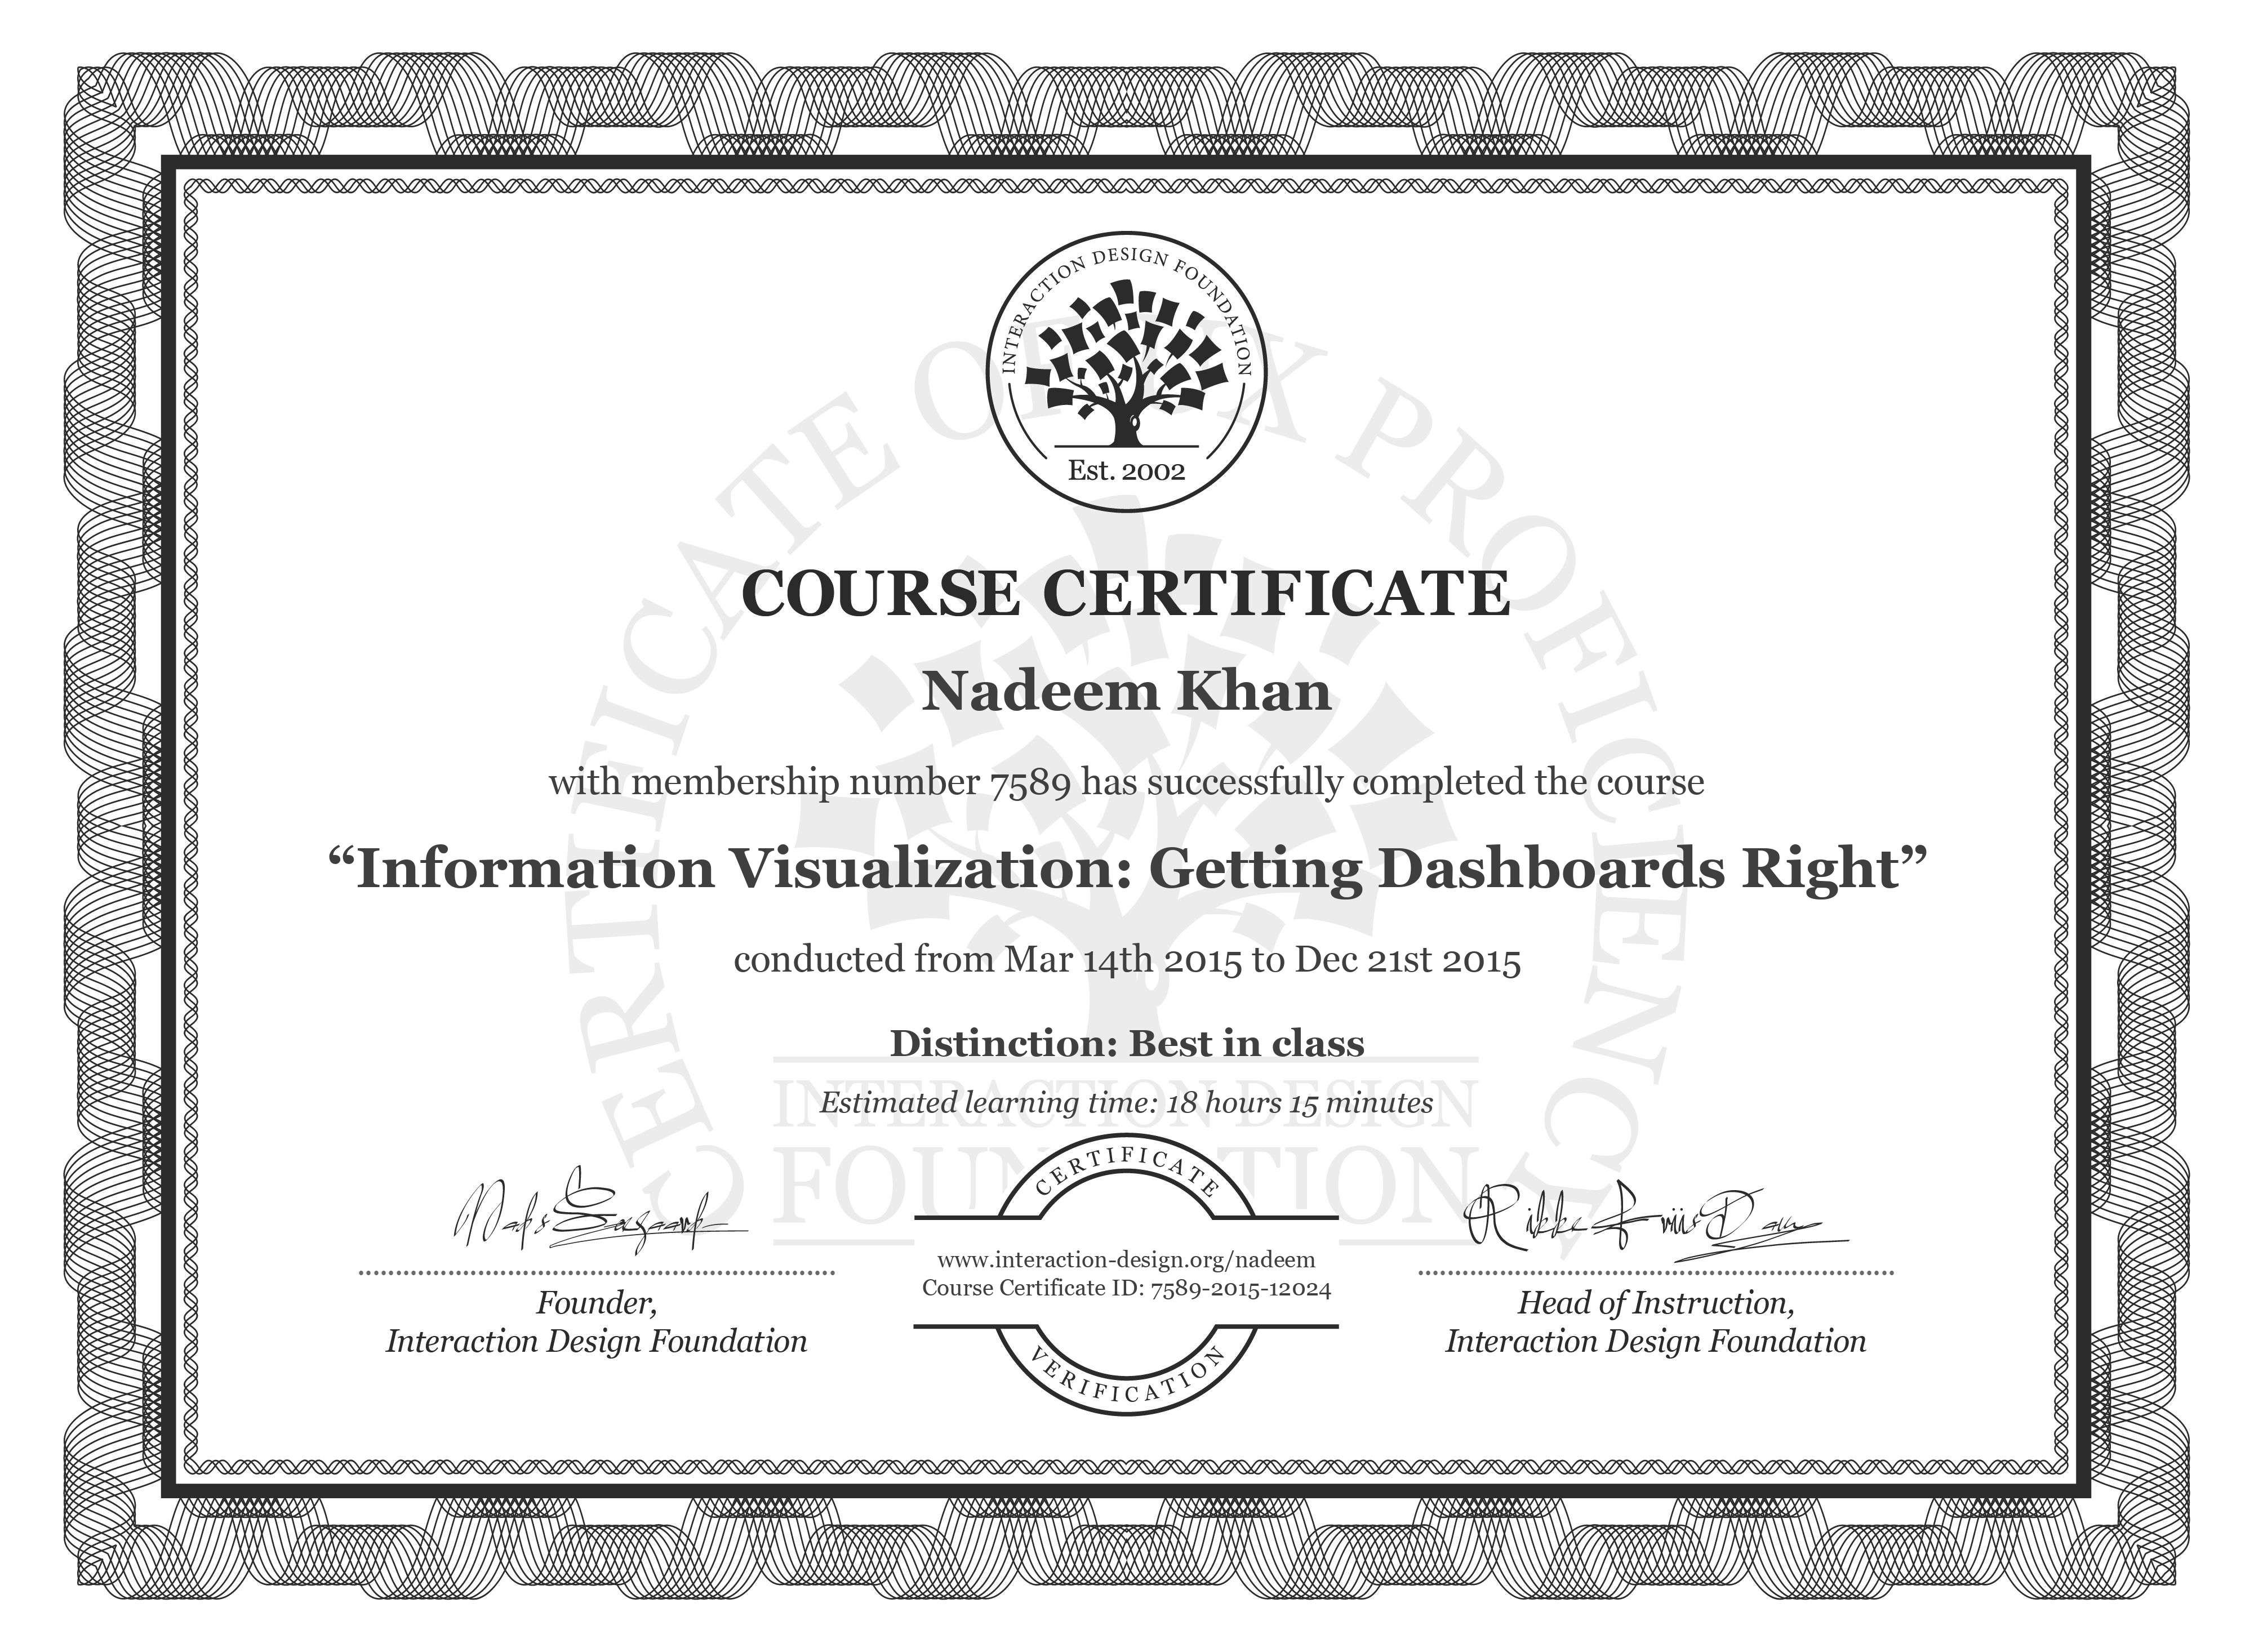 Nadeem Khan: Course Certificate - Information Visualization: Getting Dashboards Right